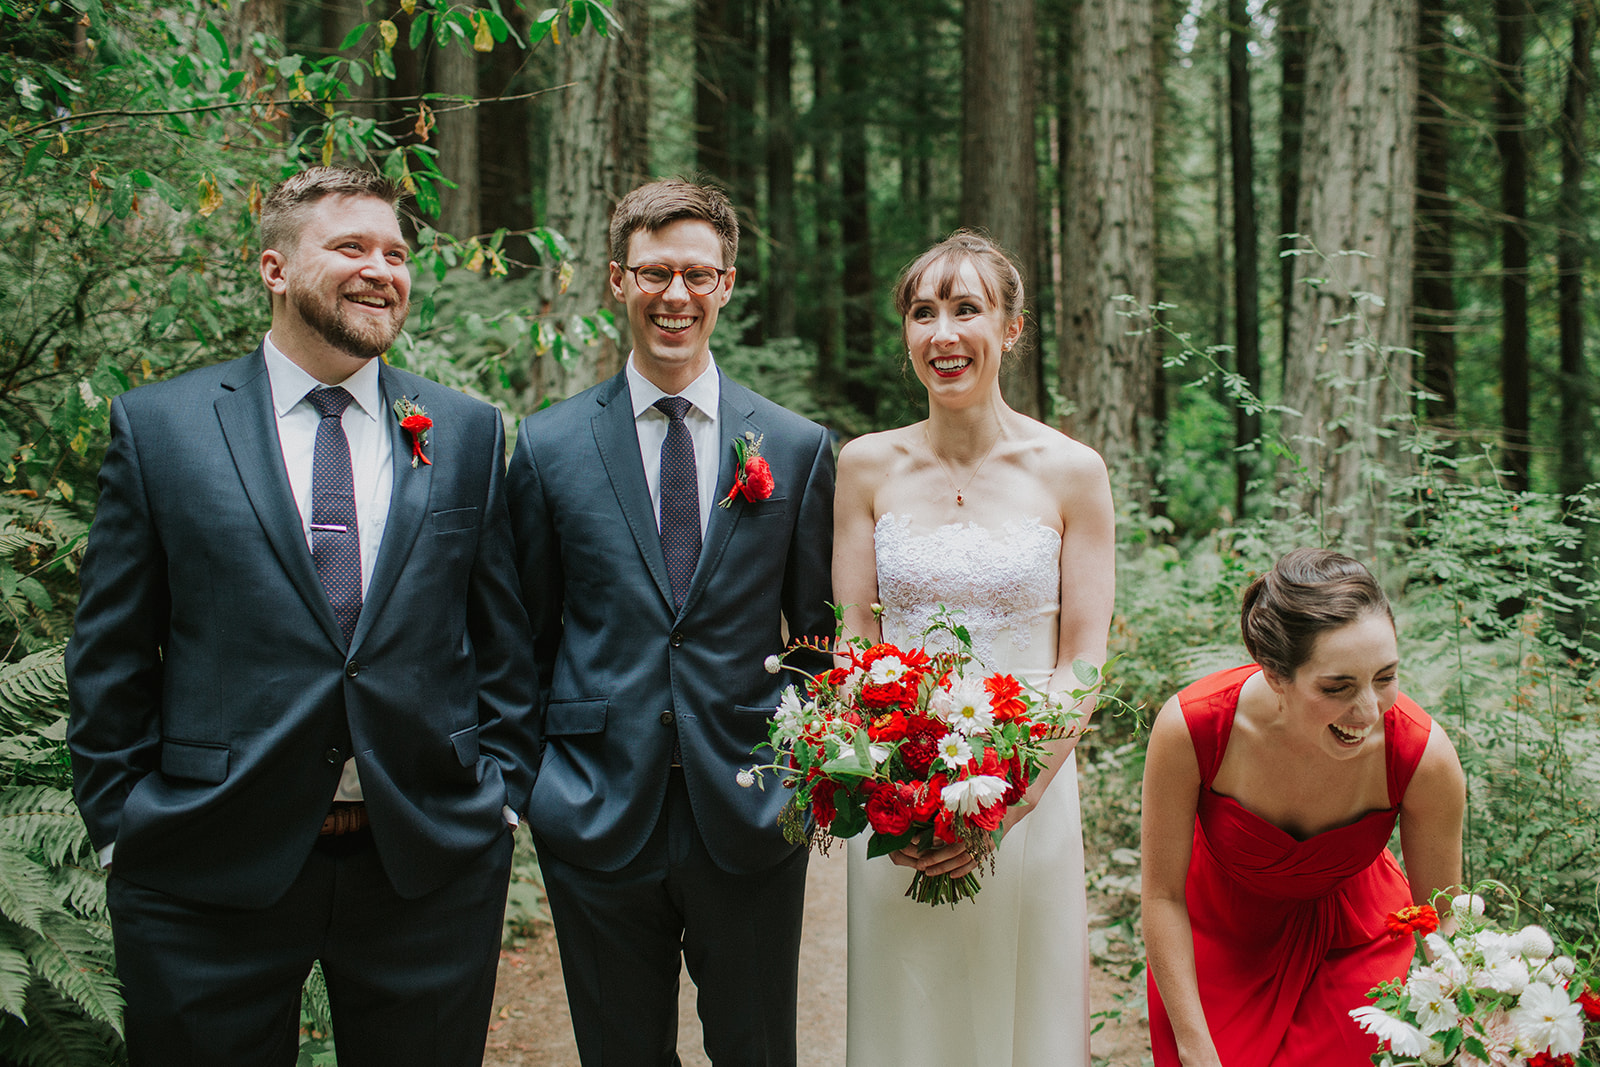 Forest-Park-Wedding-bridal-party-laugh.jpg